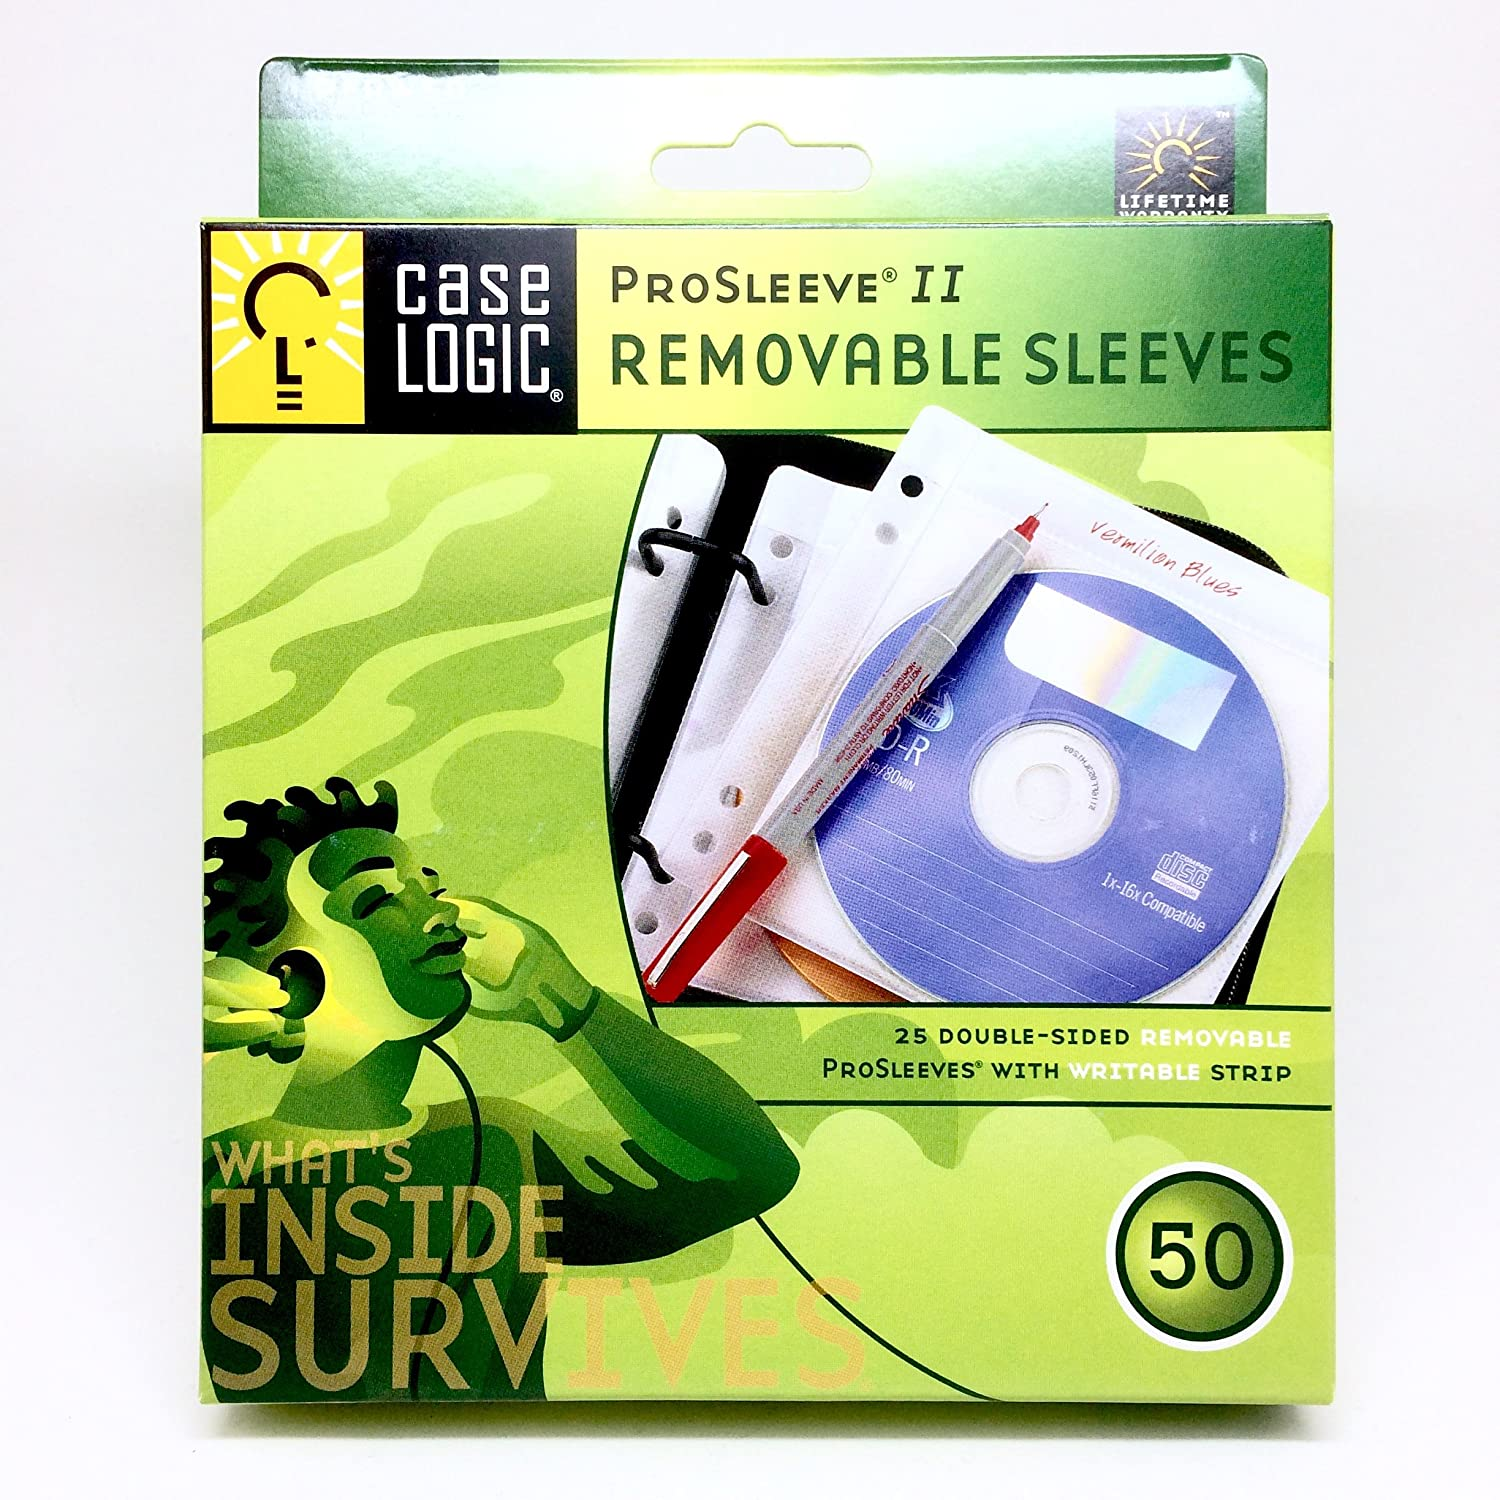 50 Disc Capacity Double Sided ProSleeve II PFRW50 Caselogic